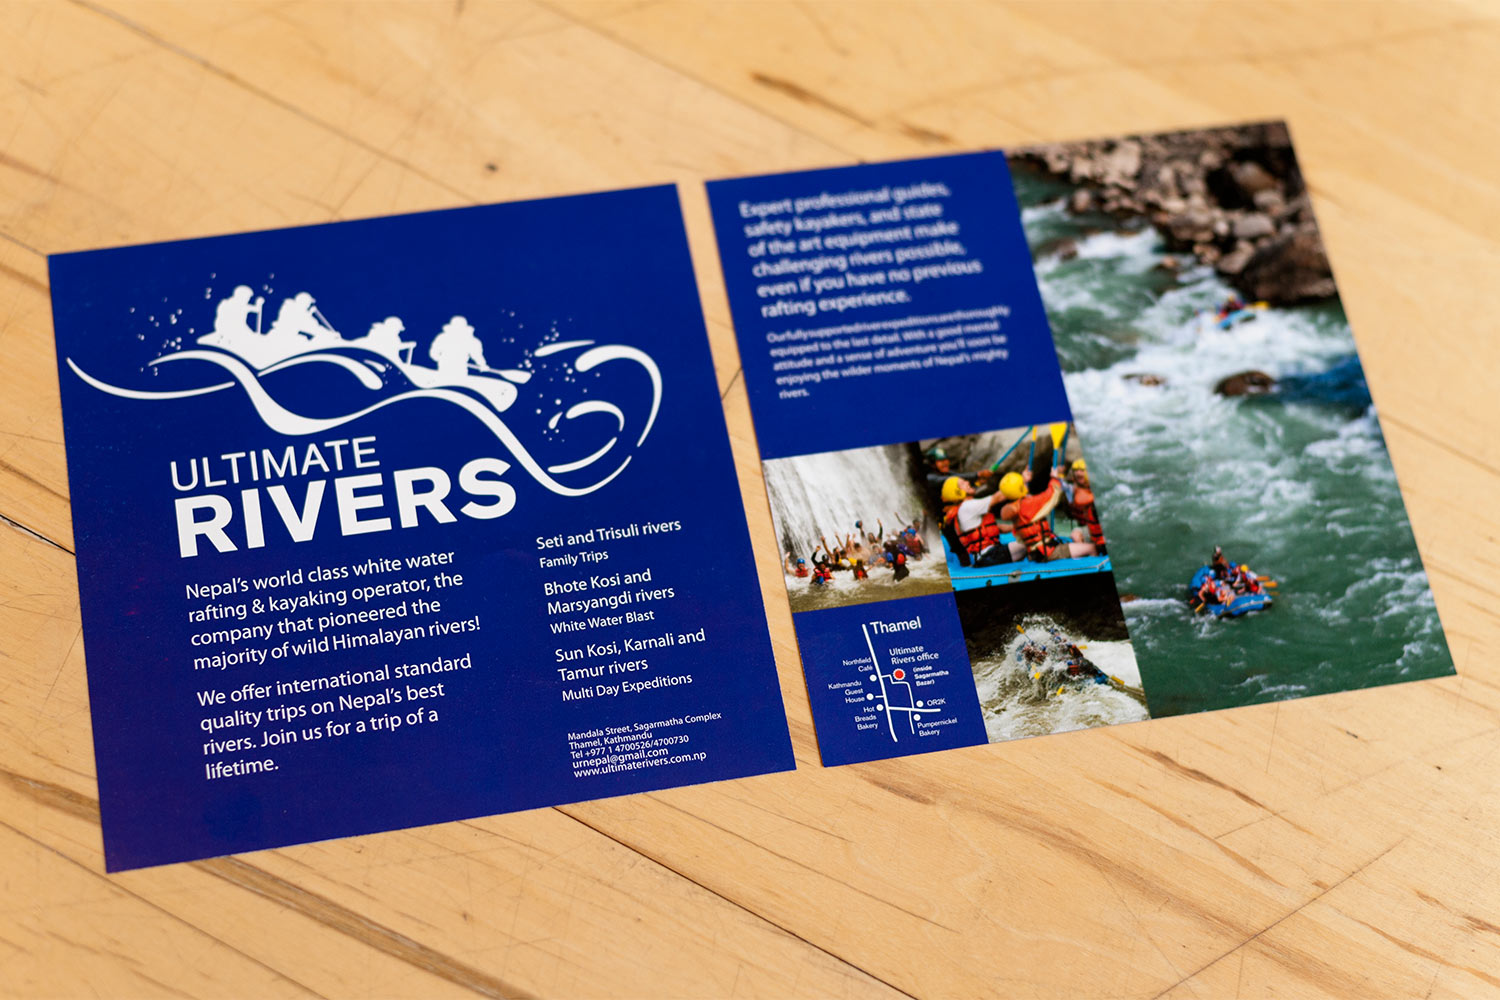 Ultimate rivers flyer